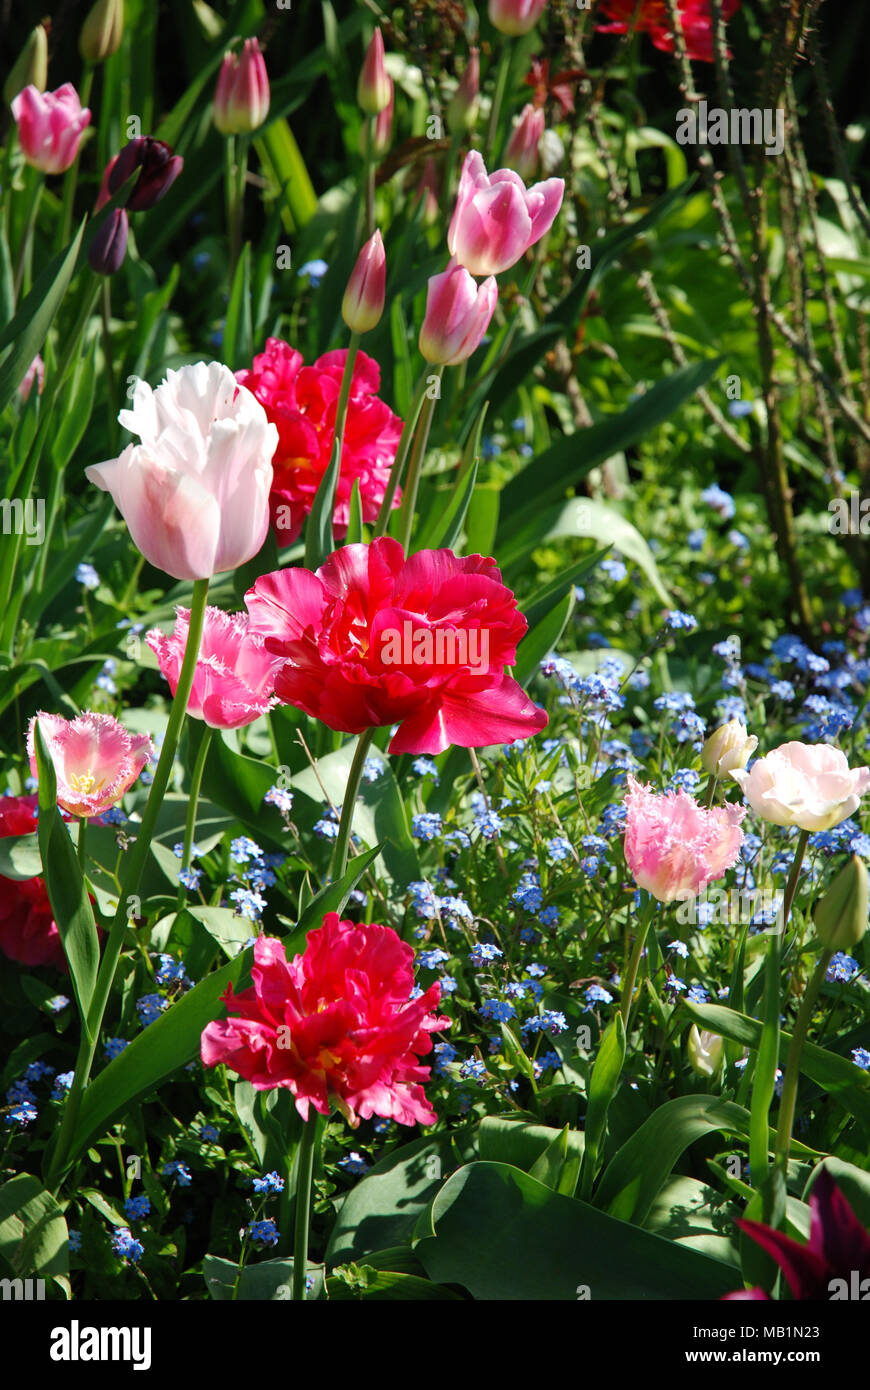 Spring Flowers Different Types Of Tulips Parrot Tulips Scarlet